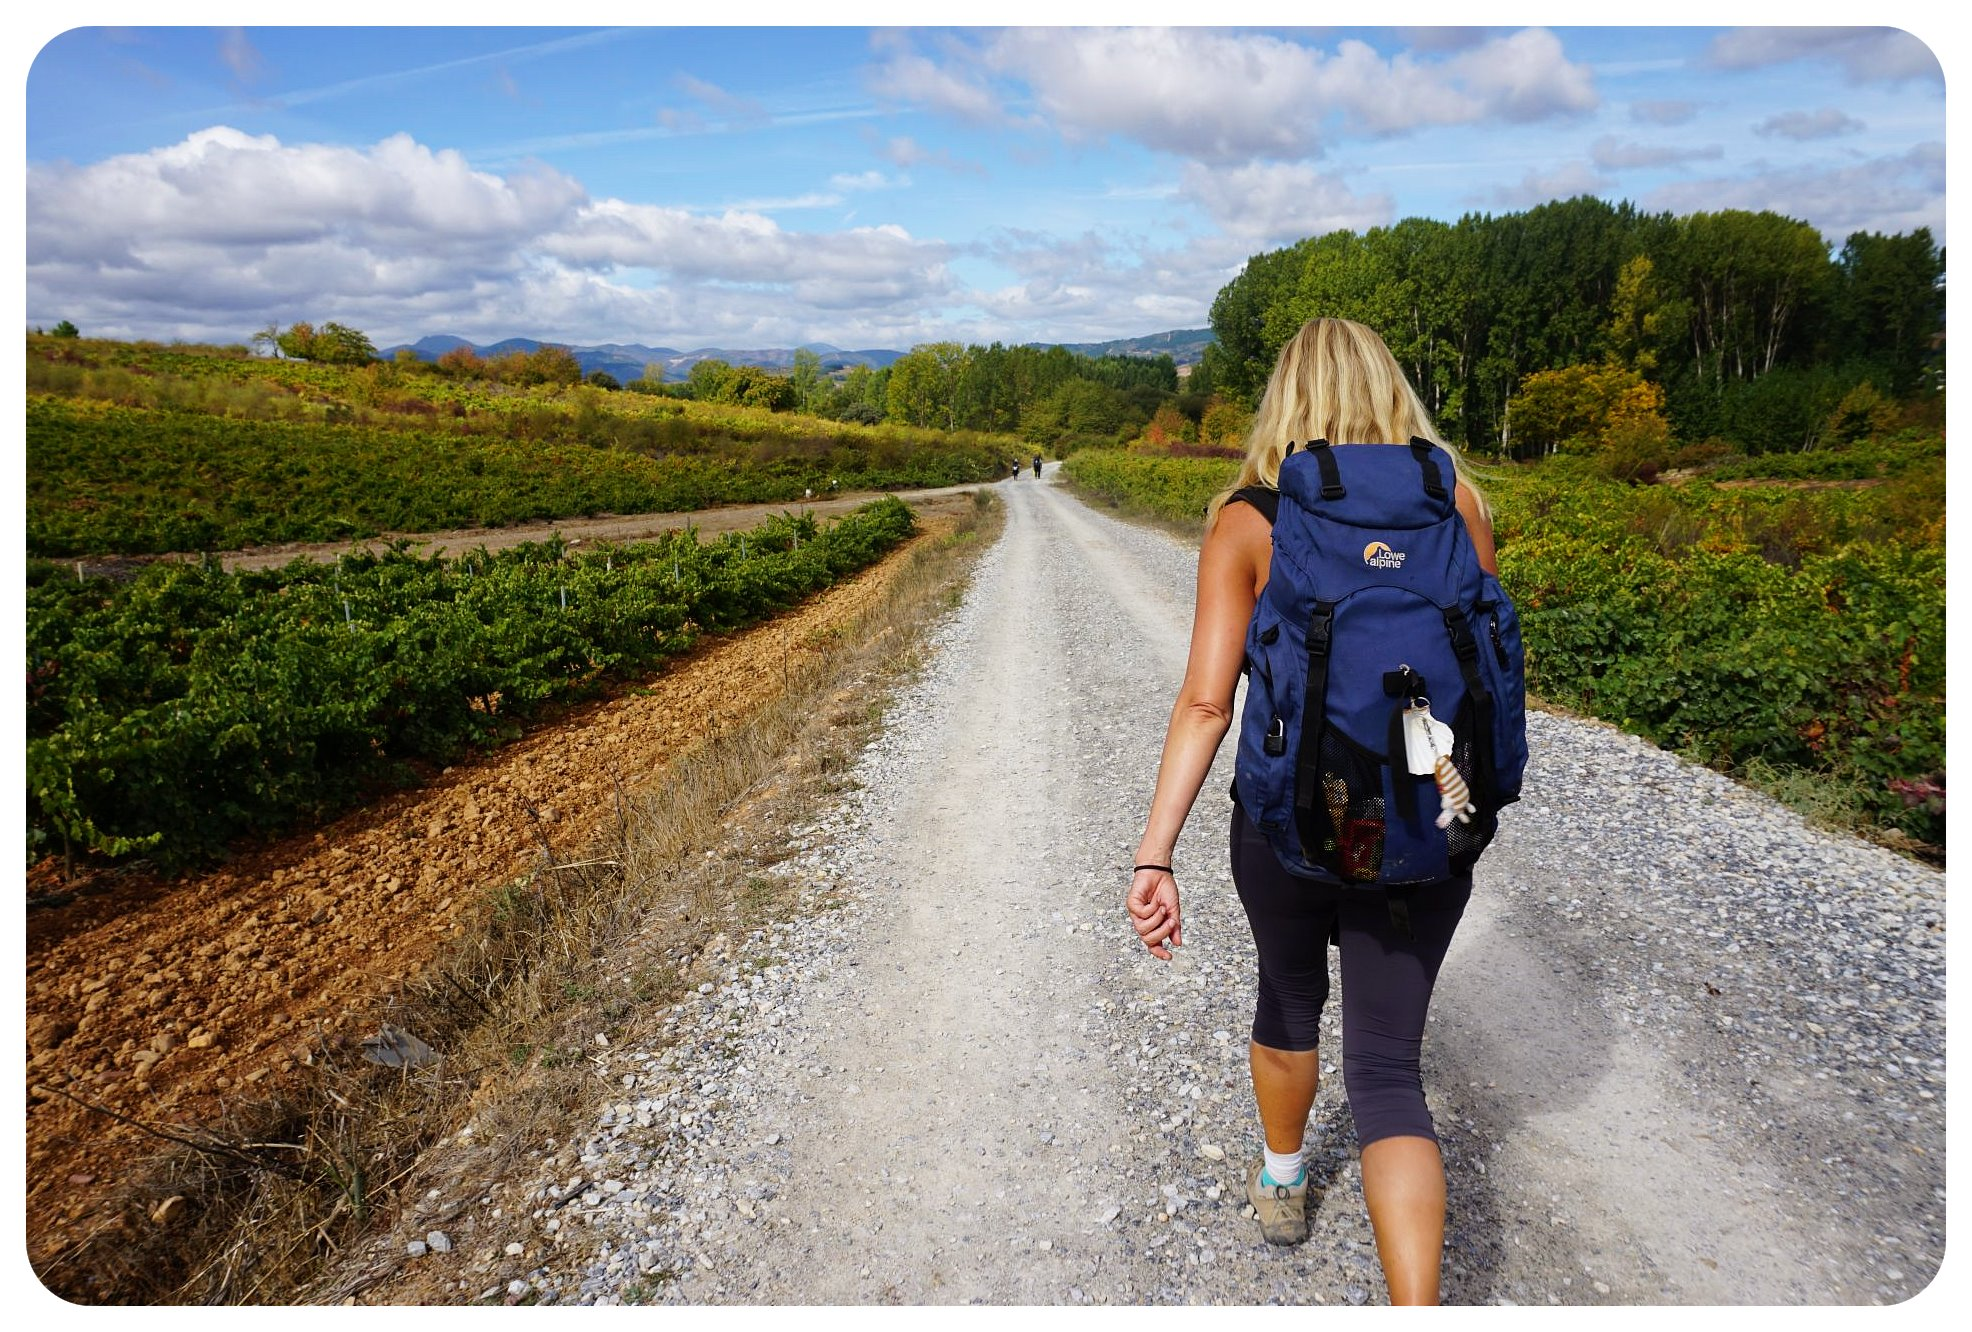 Walking The Camino De Santiago A Packing List For A 500